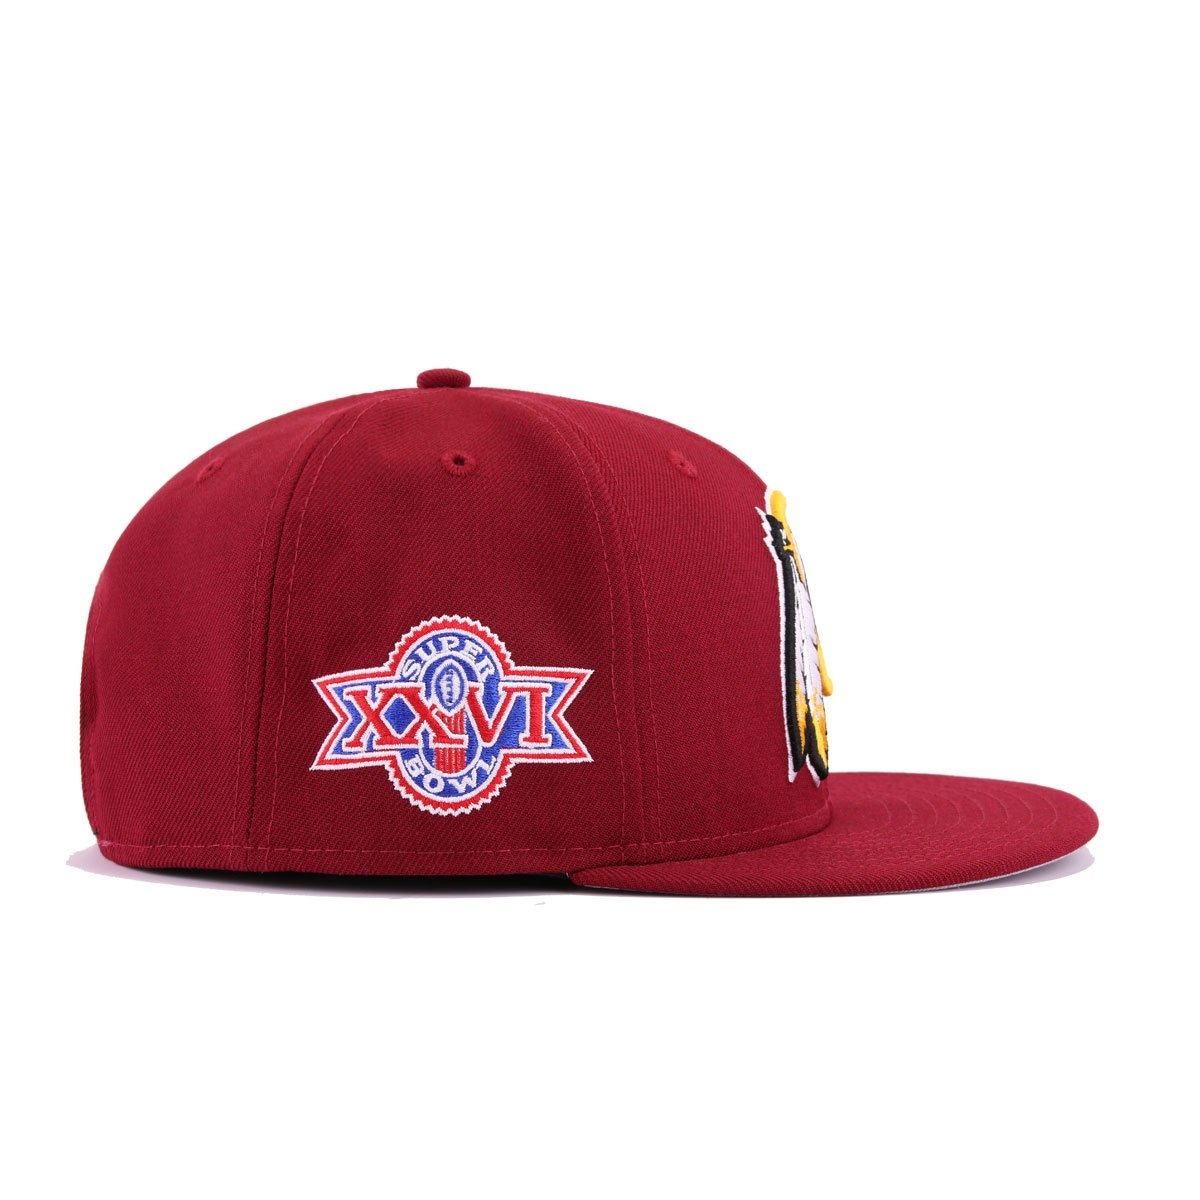 884f19f5 Washington Redskins Cardinal Red Maroon A's Gold Superbowl 26 New Era  9Fifty Snapback